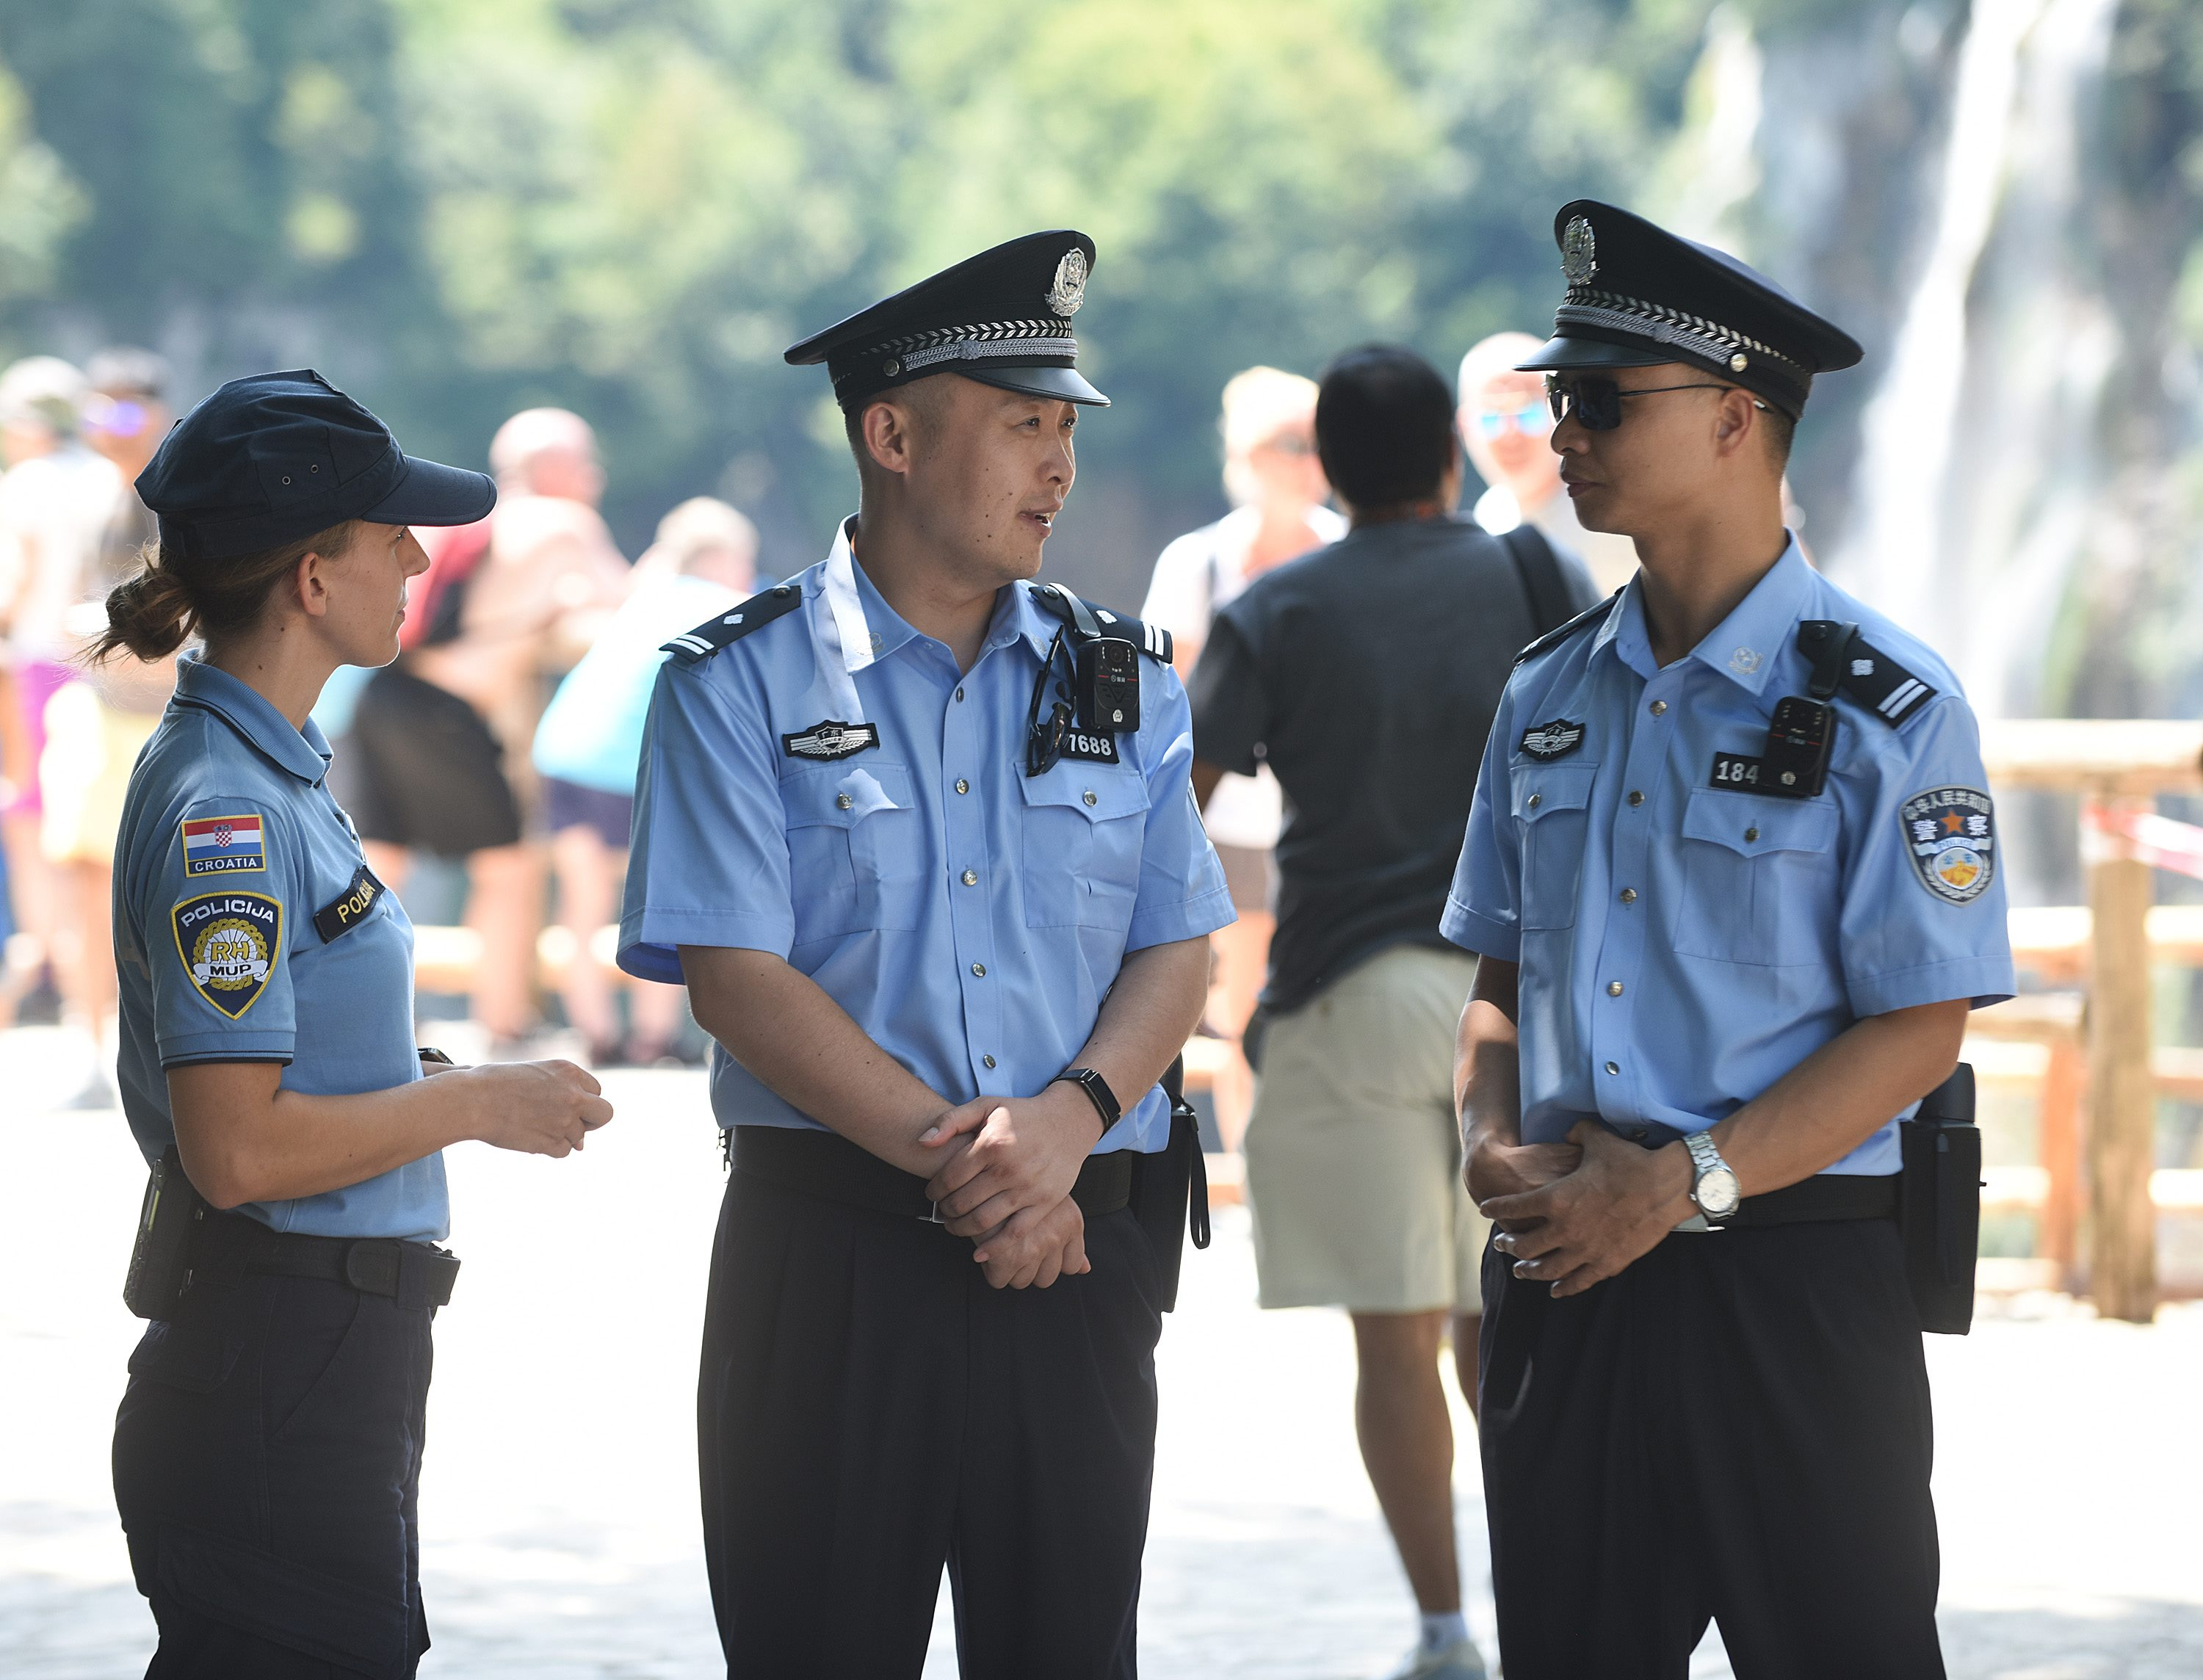 Chinese Police